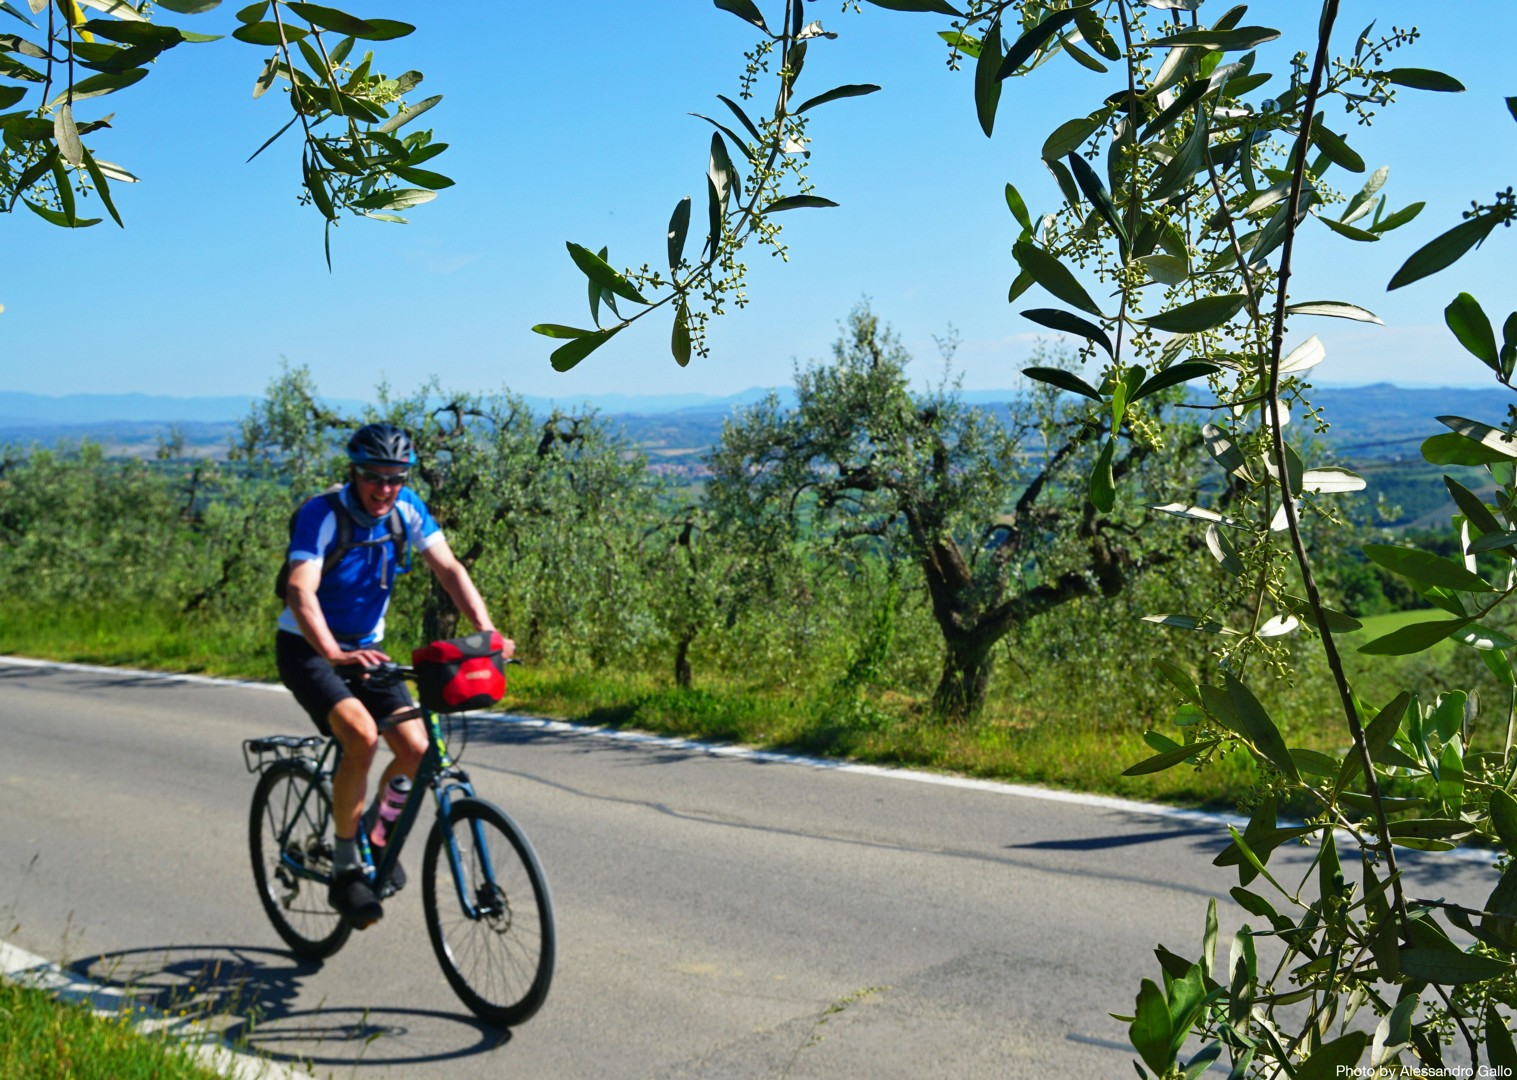 leisure-cycling-holiday-in-umbria-italy.jpg - Italy - Green Valley of Umbria - Self-Guided Leisure Cycling Holiday - Leisure Cycling